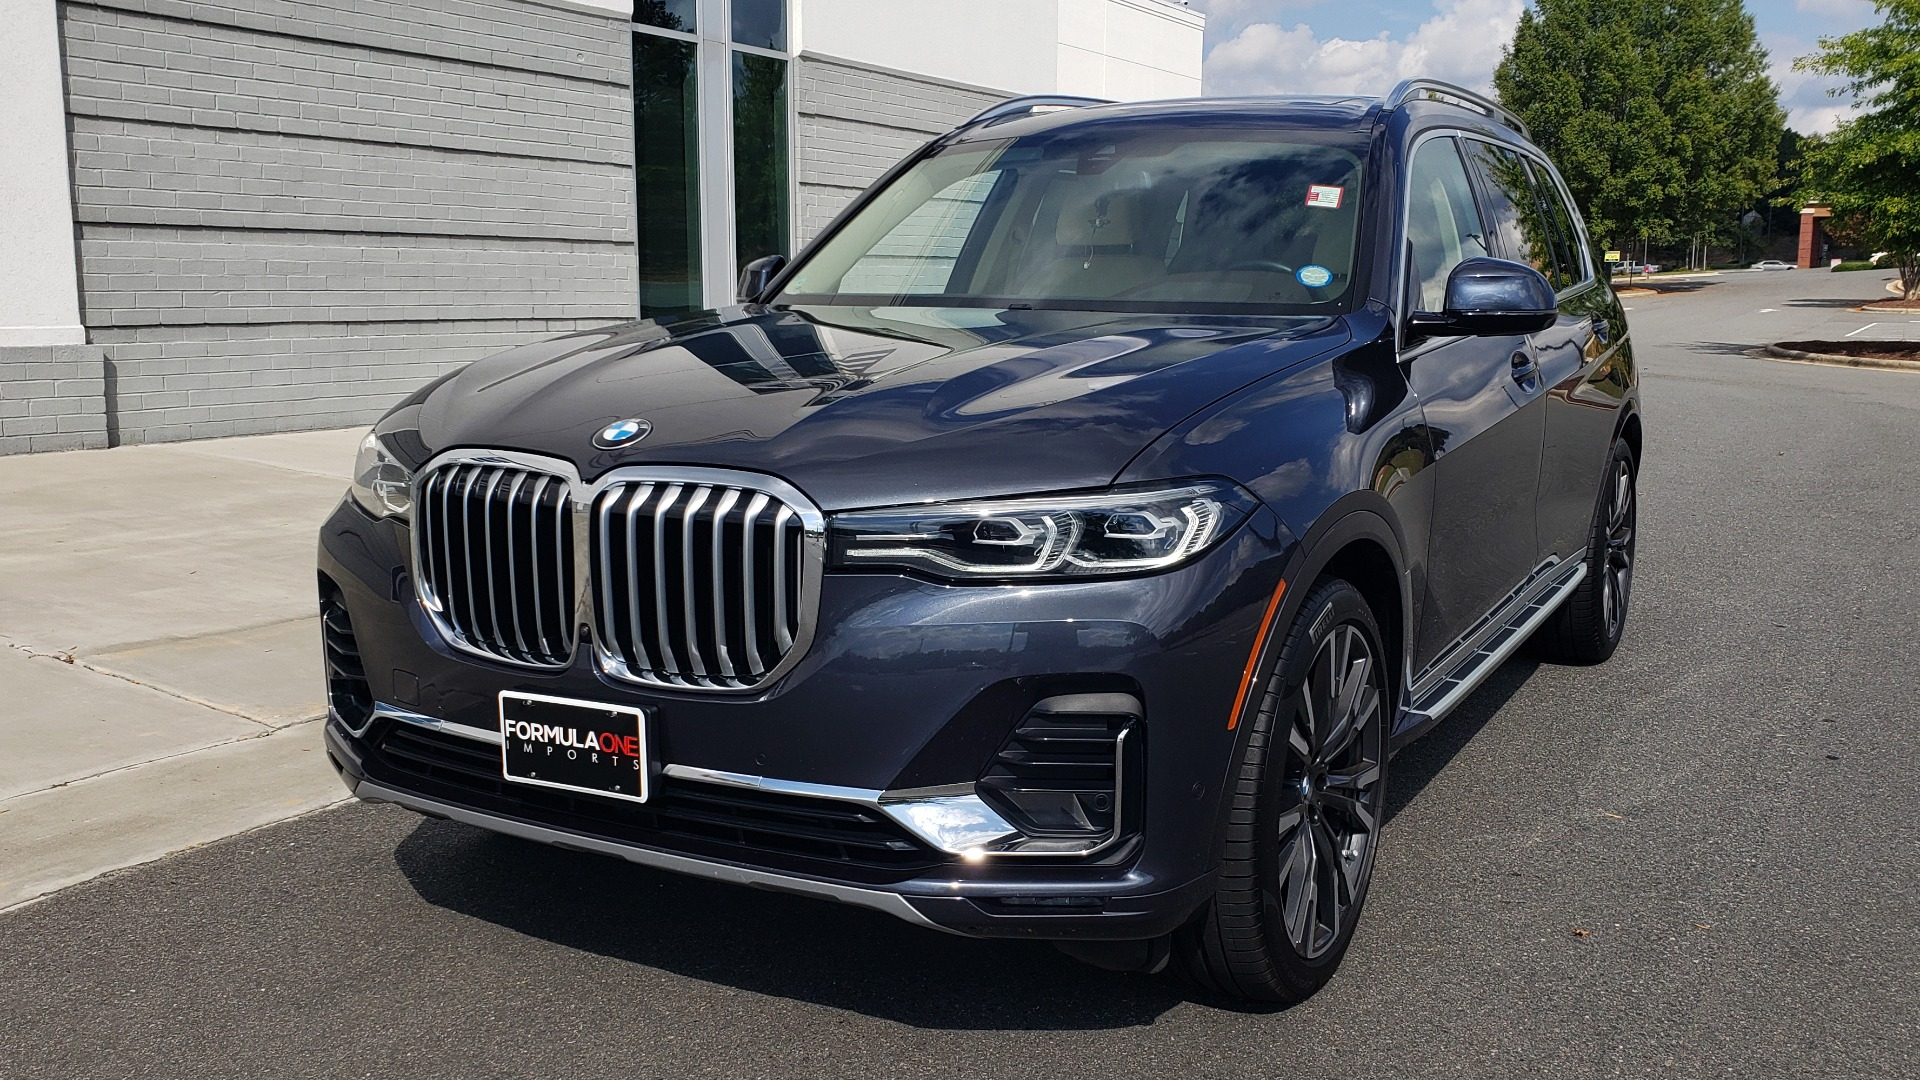 Used 2019 BMW X7 XDRIVE40I PREMIUM / LUXURY / COLD WEATHER / PARK ASST / PANORAMIC SKY / TOW for sale $75,999 at Formula Imports in Charlotte NC 28227 2